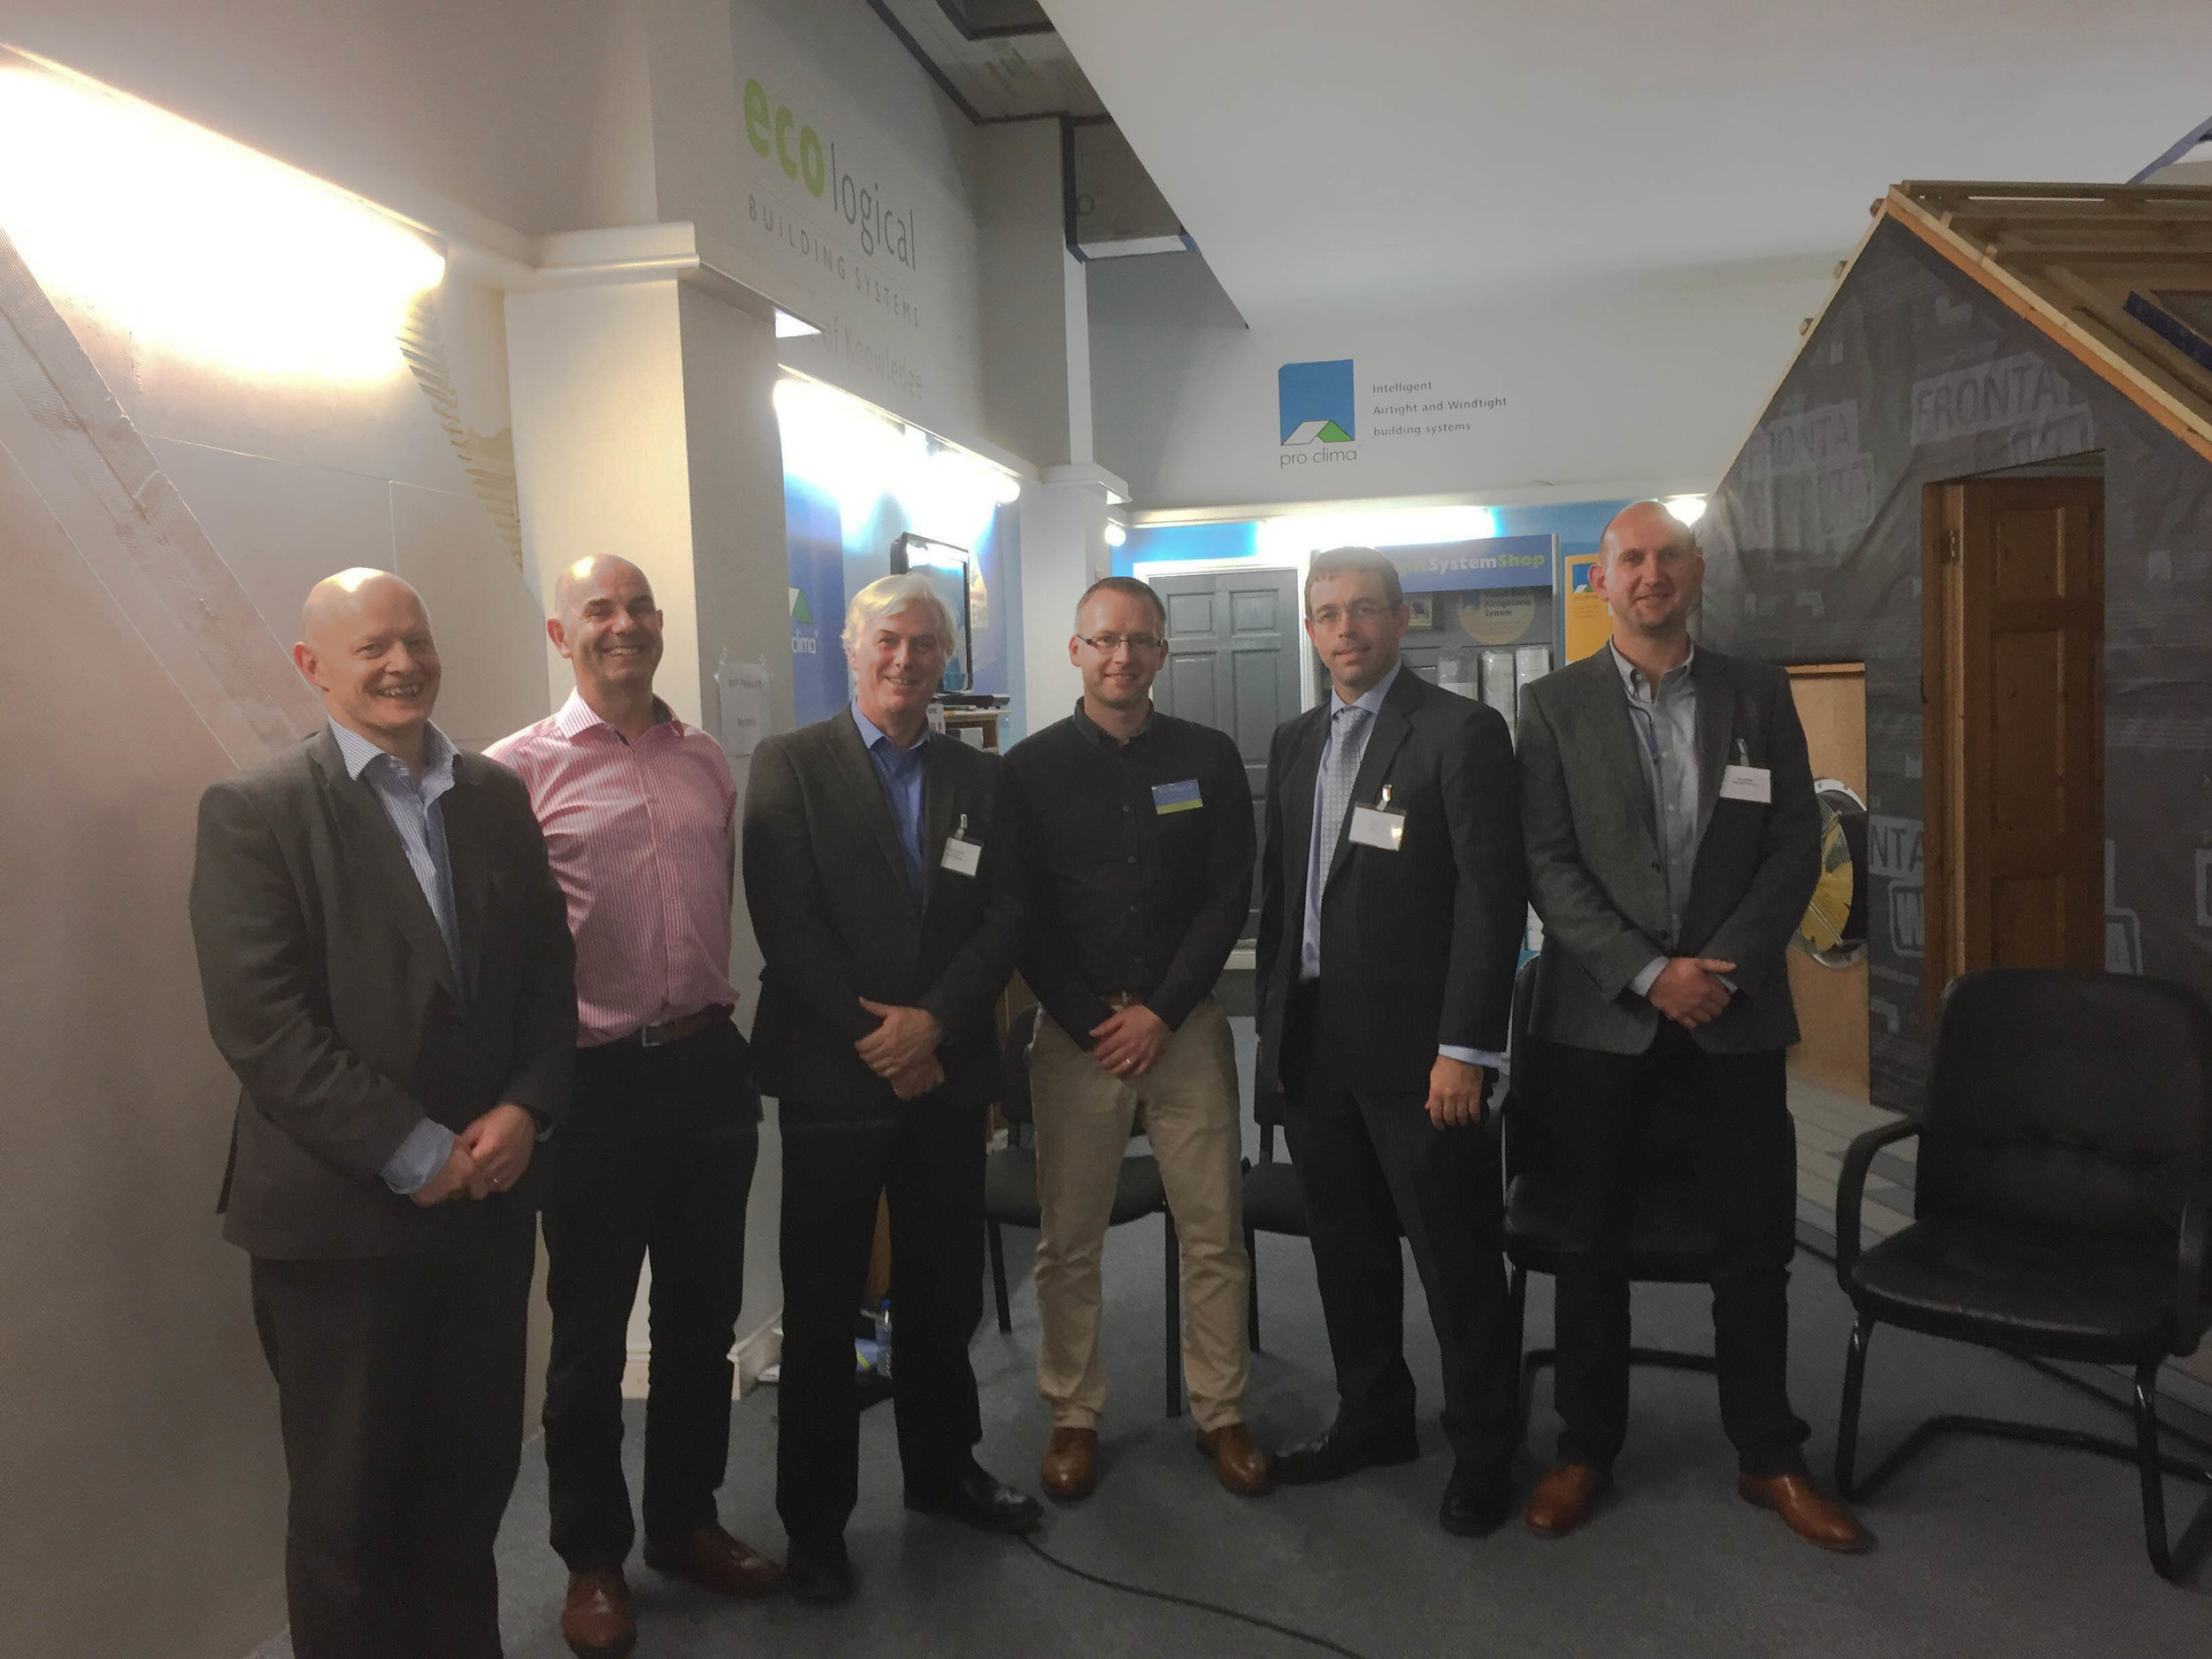 Paul McAllister - Passive House Architect,  Michael Hanratty  (Managing Director at IHER Energy Services),   Maurice Falvey , (Nilan) Niall McCrossan ( Ecological Building Systems )  Gary O'Sullivan , (The National Standards Authority of Ireland) and  Emmet Nee , (Passive house Contractor)